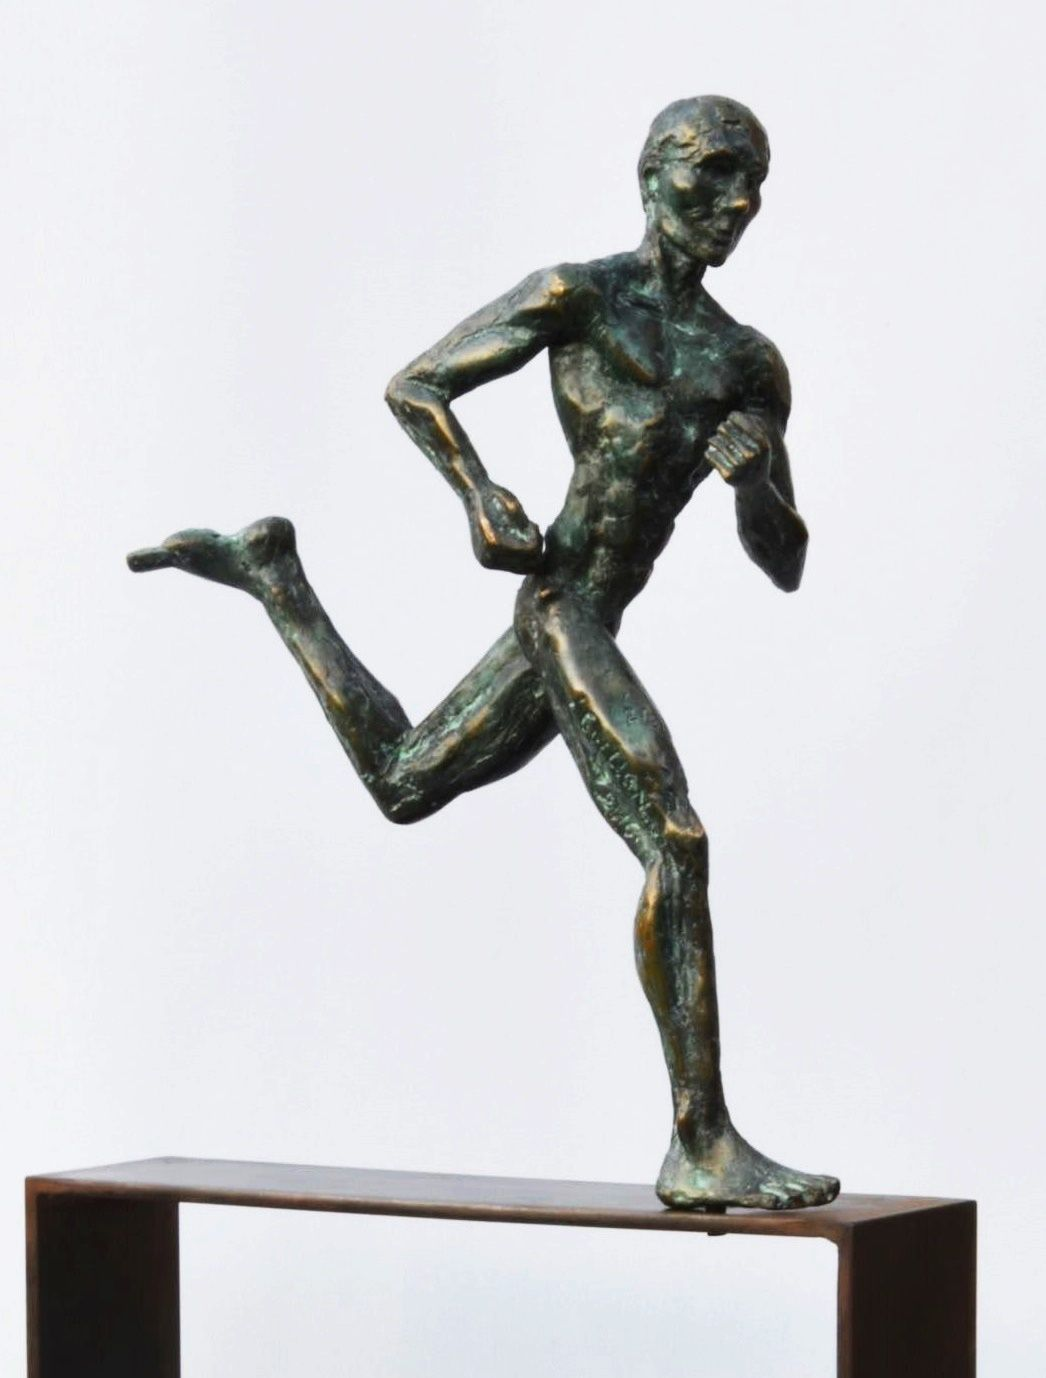 Runner Marathon,Yann Guillon,Sculpture